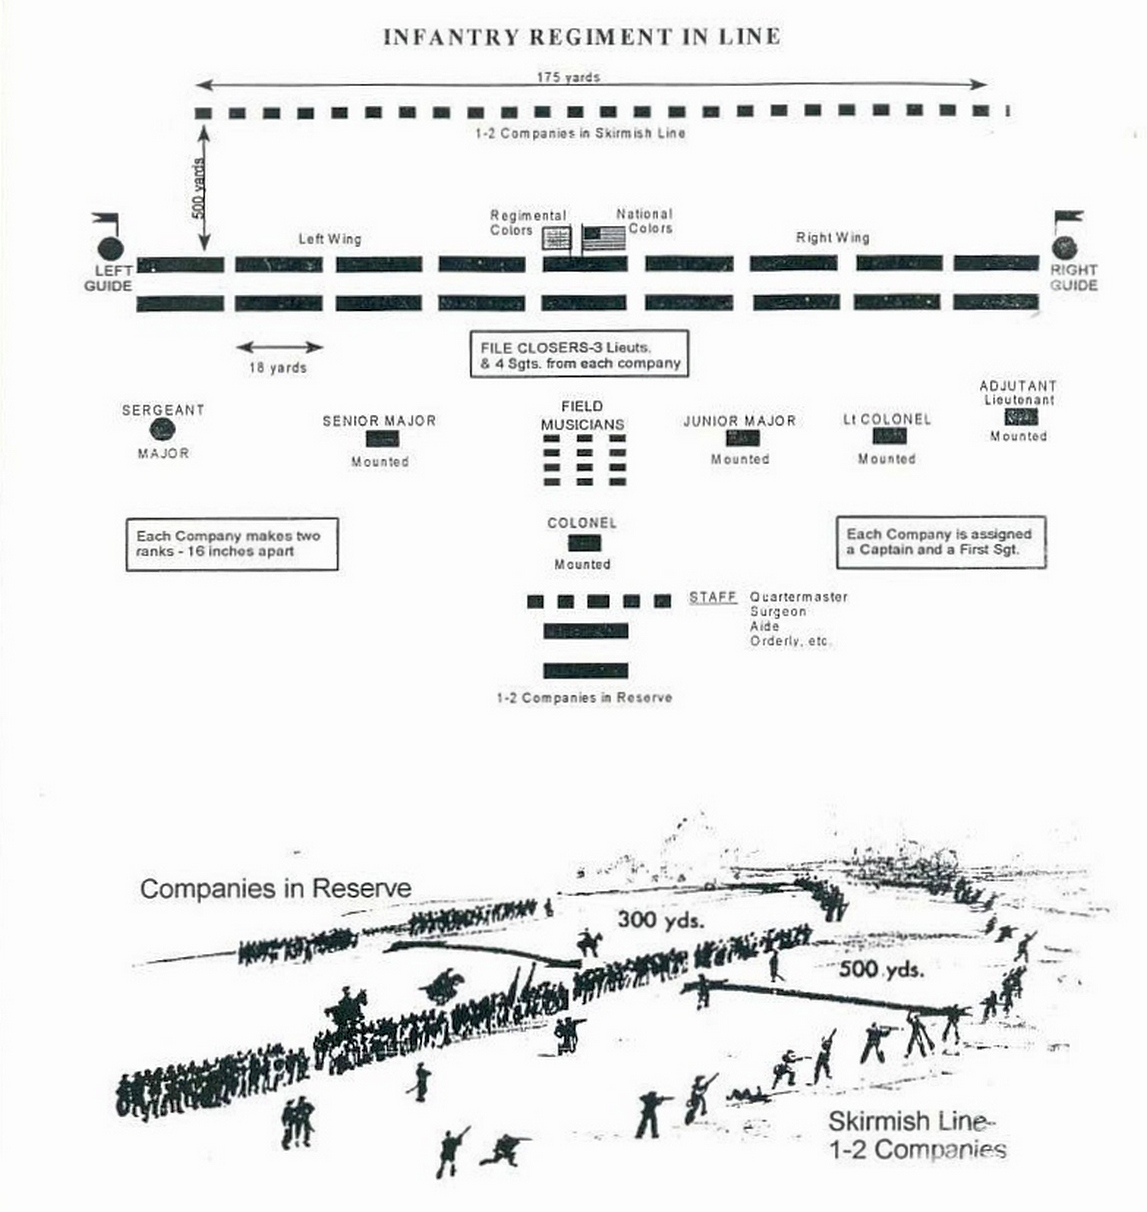 Civil War Chart Civil War Army Infantry